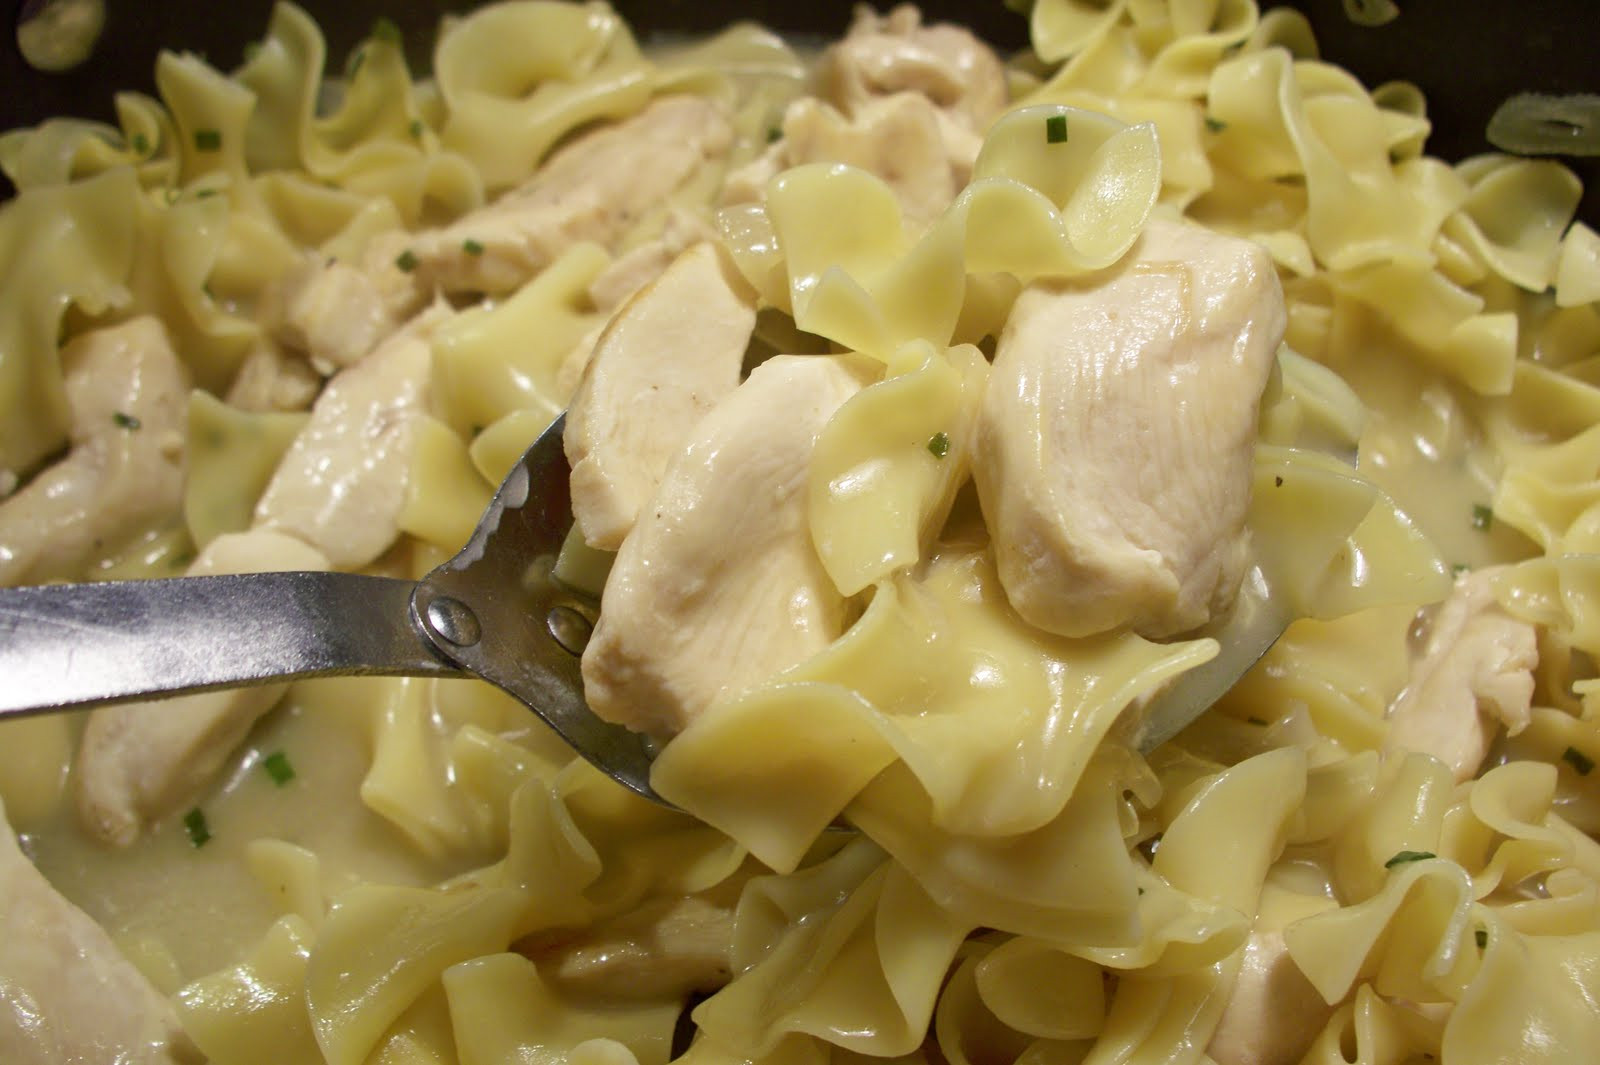 Chicken And Noodles Recipe  Chicken and Egg Noodle Dumplings Food So Good Mall